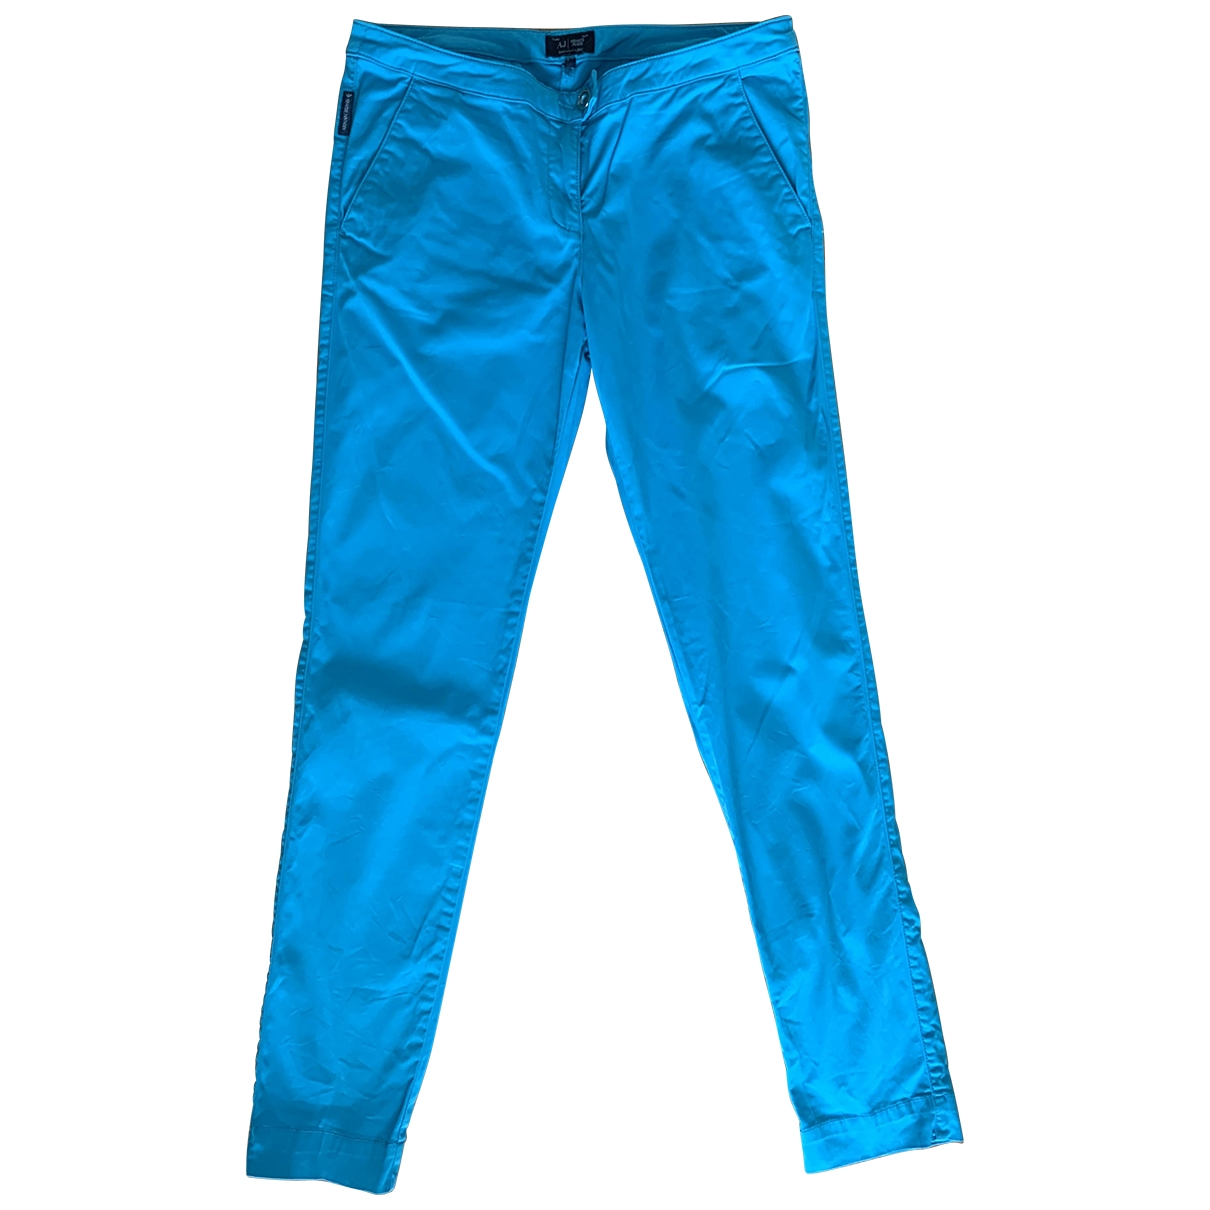 Armani Jeans \N Turquoise Cotton Trousers for Women 42 IT